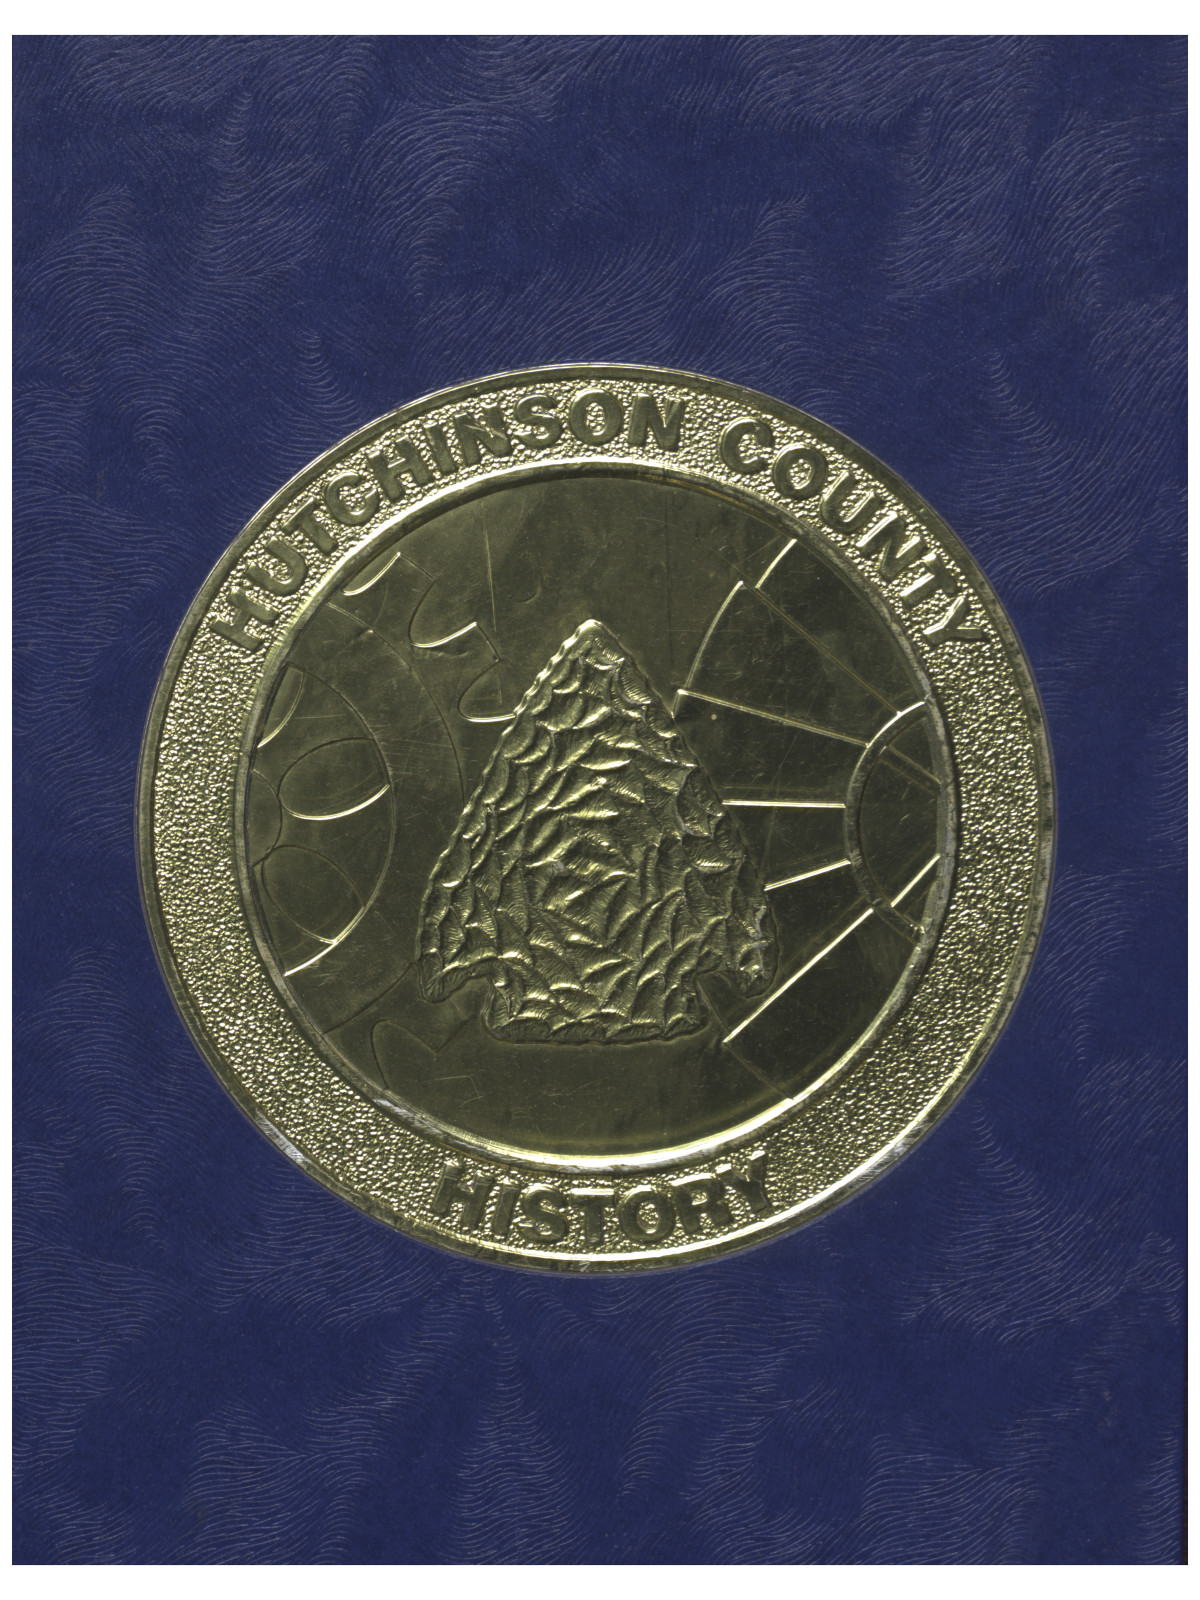 History of Hutchinson County, Texas: 104 Years, 1876-1980                                                                                                      [Sequence #]: 1 of 526